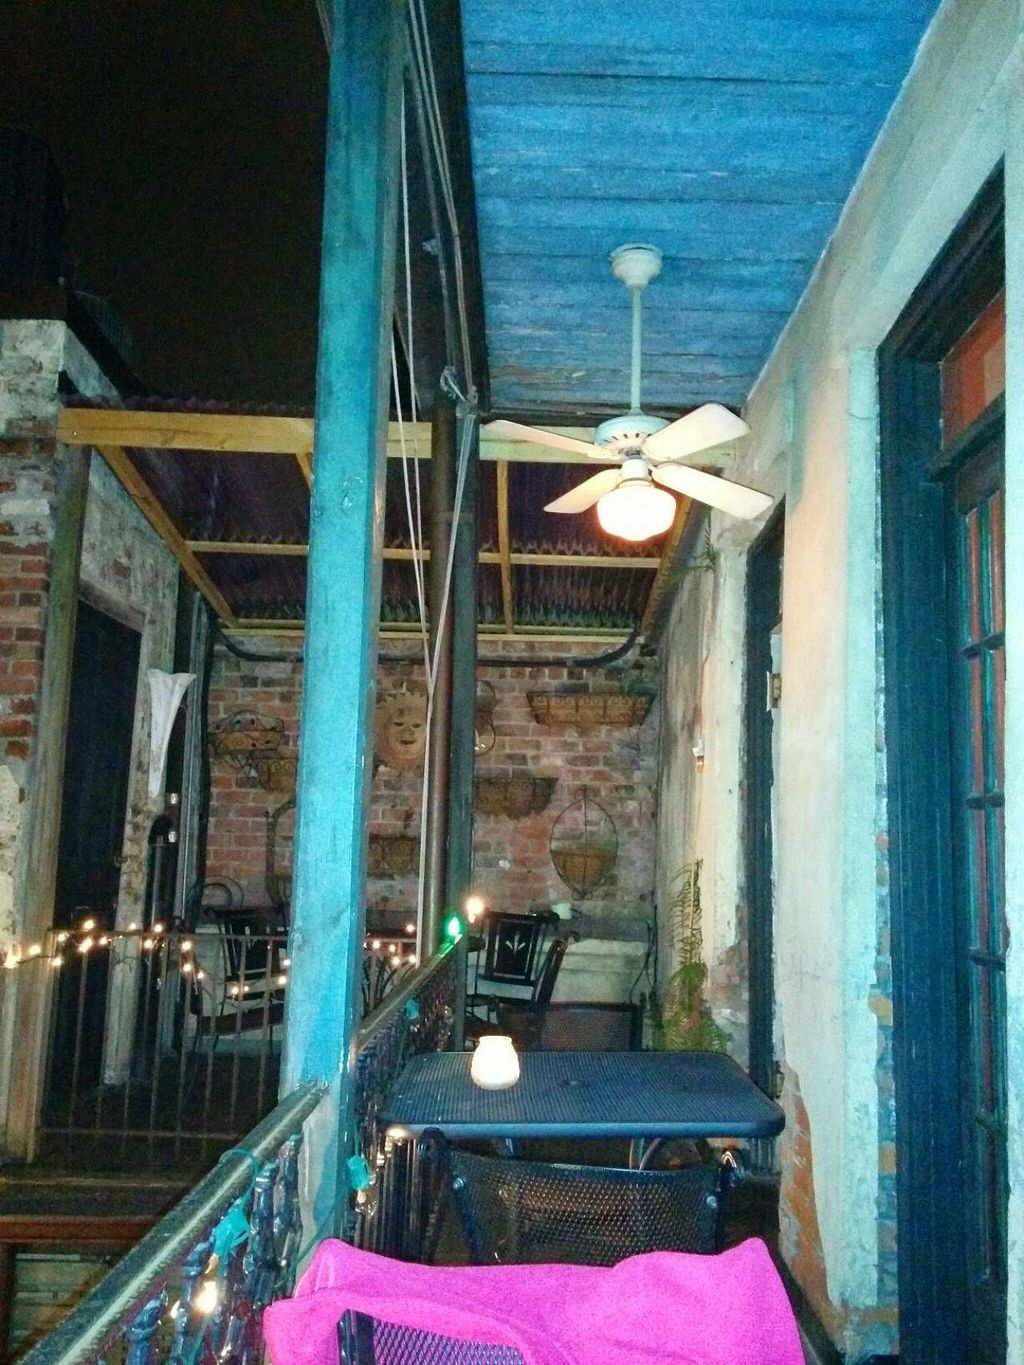 """Photo of CLOSED: Bhava  by <a href=""""/members/profile/mmeghani"""">mmeghani</a> <br/>Dining area overlooking a nice courtyard to the side & below <br/> May 22, 2014  - <a href='/contact/abuse/image/43281/70499'>Report</a>"""